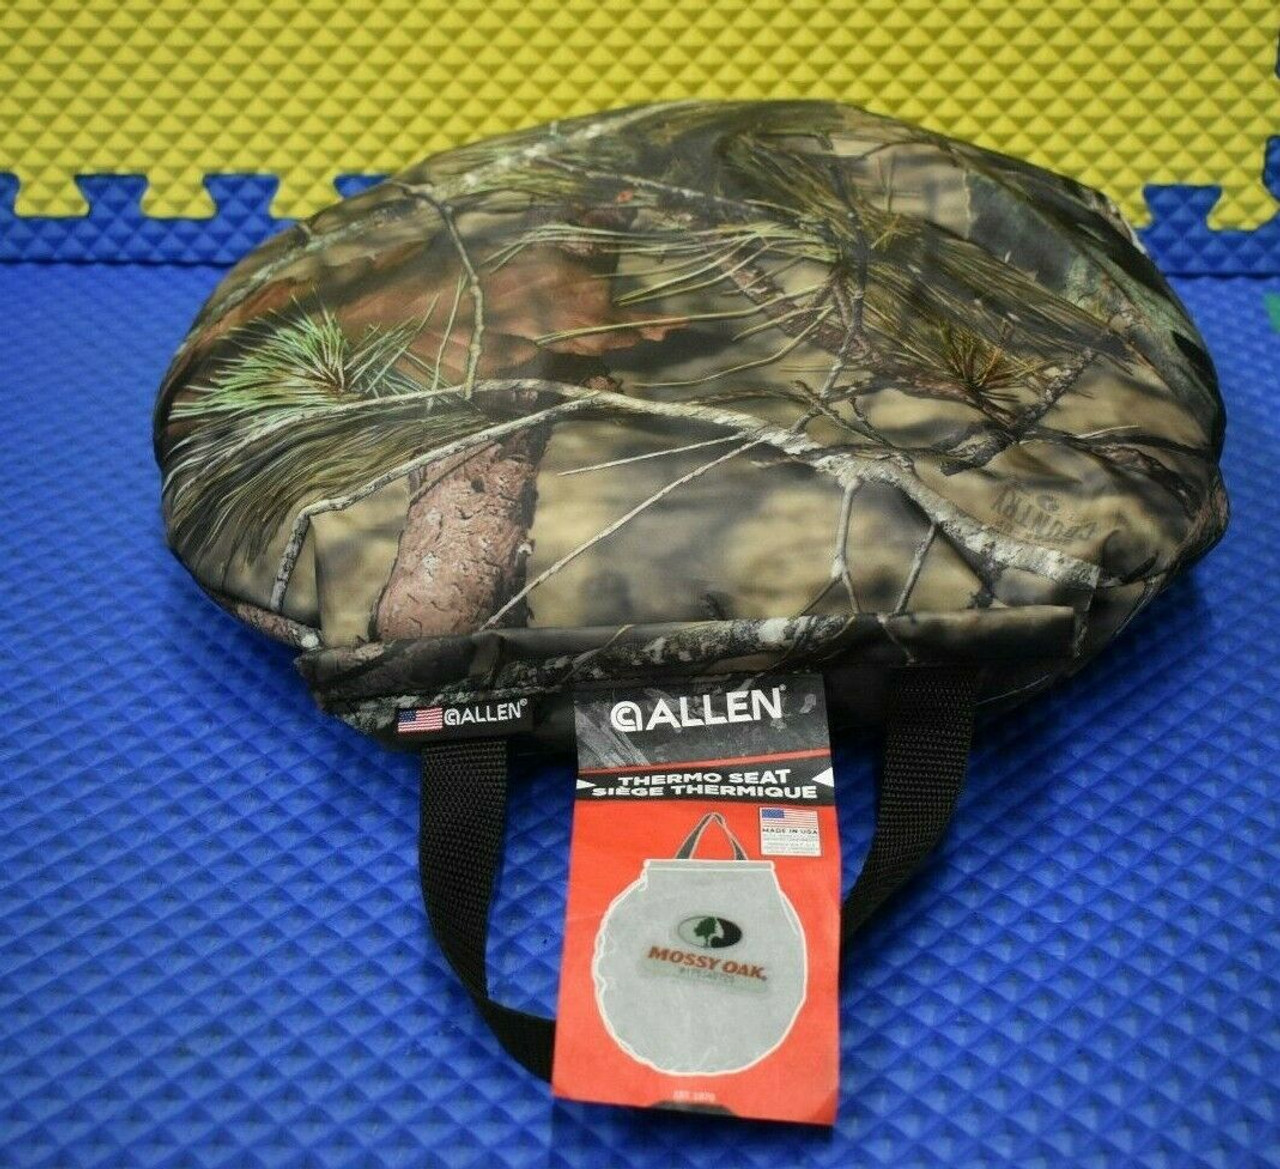 Allen Mossy Oak Break Up Country Camo Thermo Seat #112 00112